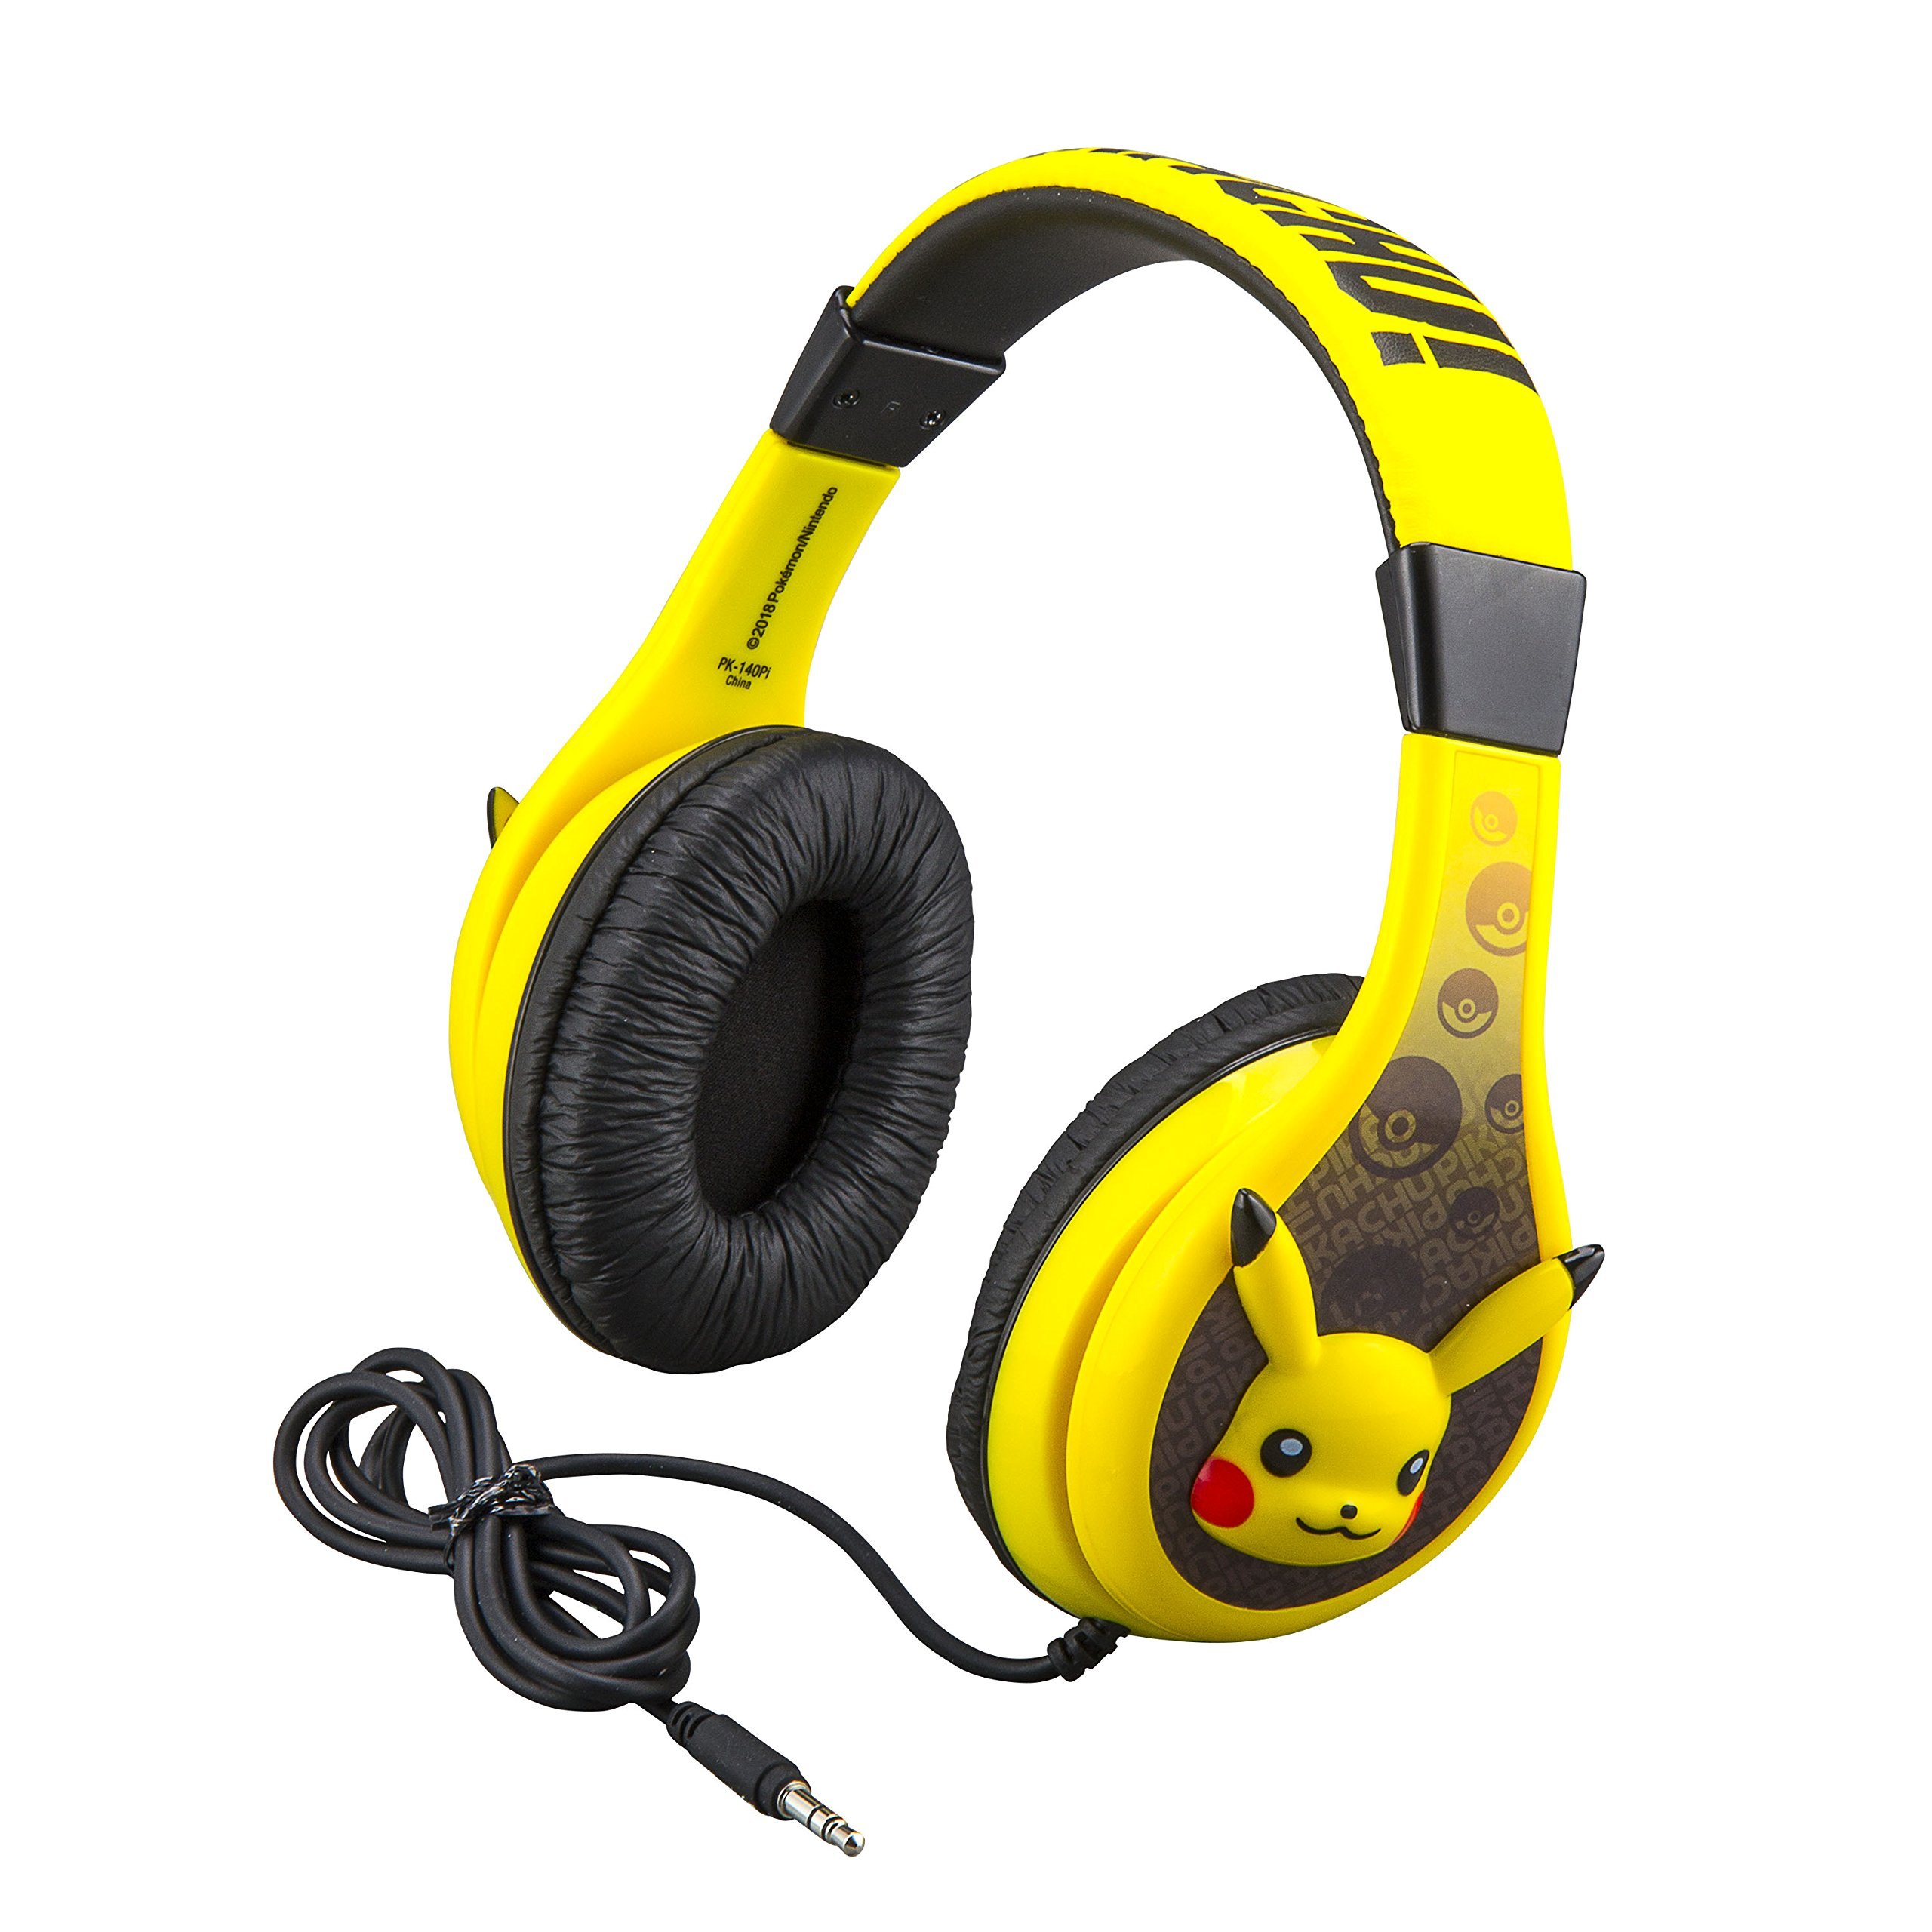 Pokemon Pikachu Headphones for Kids with Built in Volume Limiting Feature for Kid Friendly Safe Listening